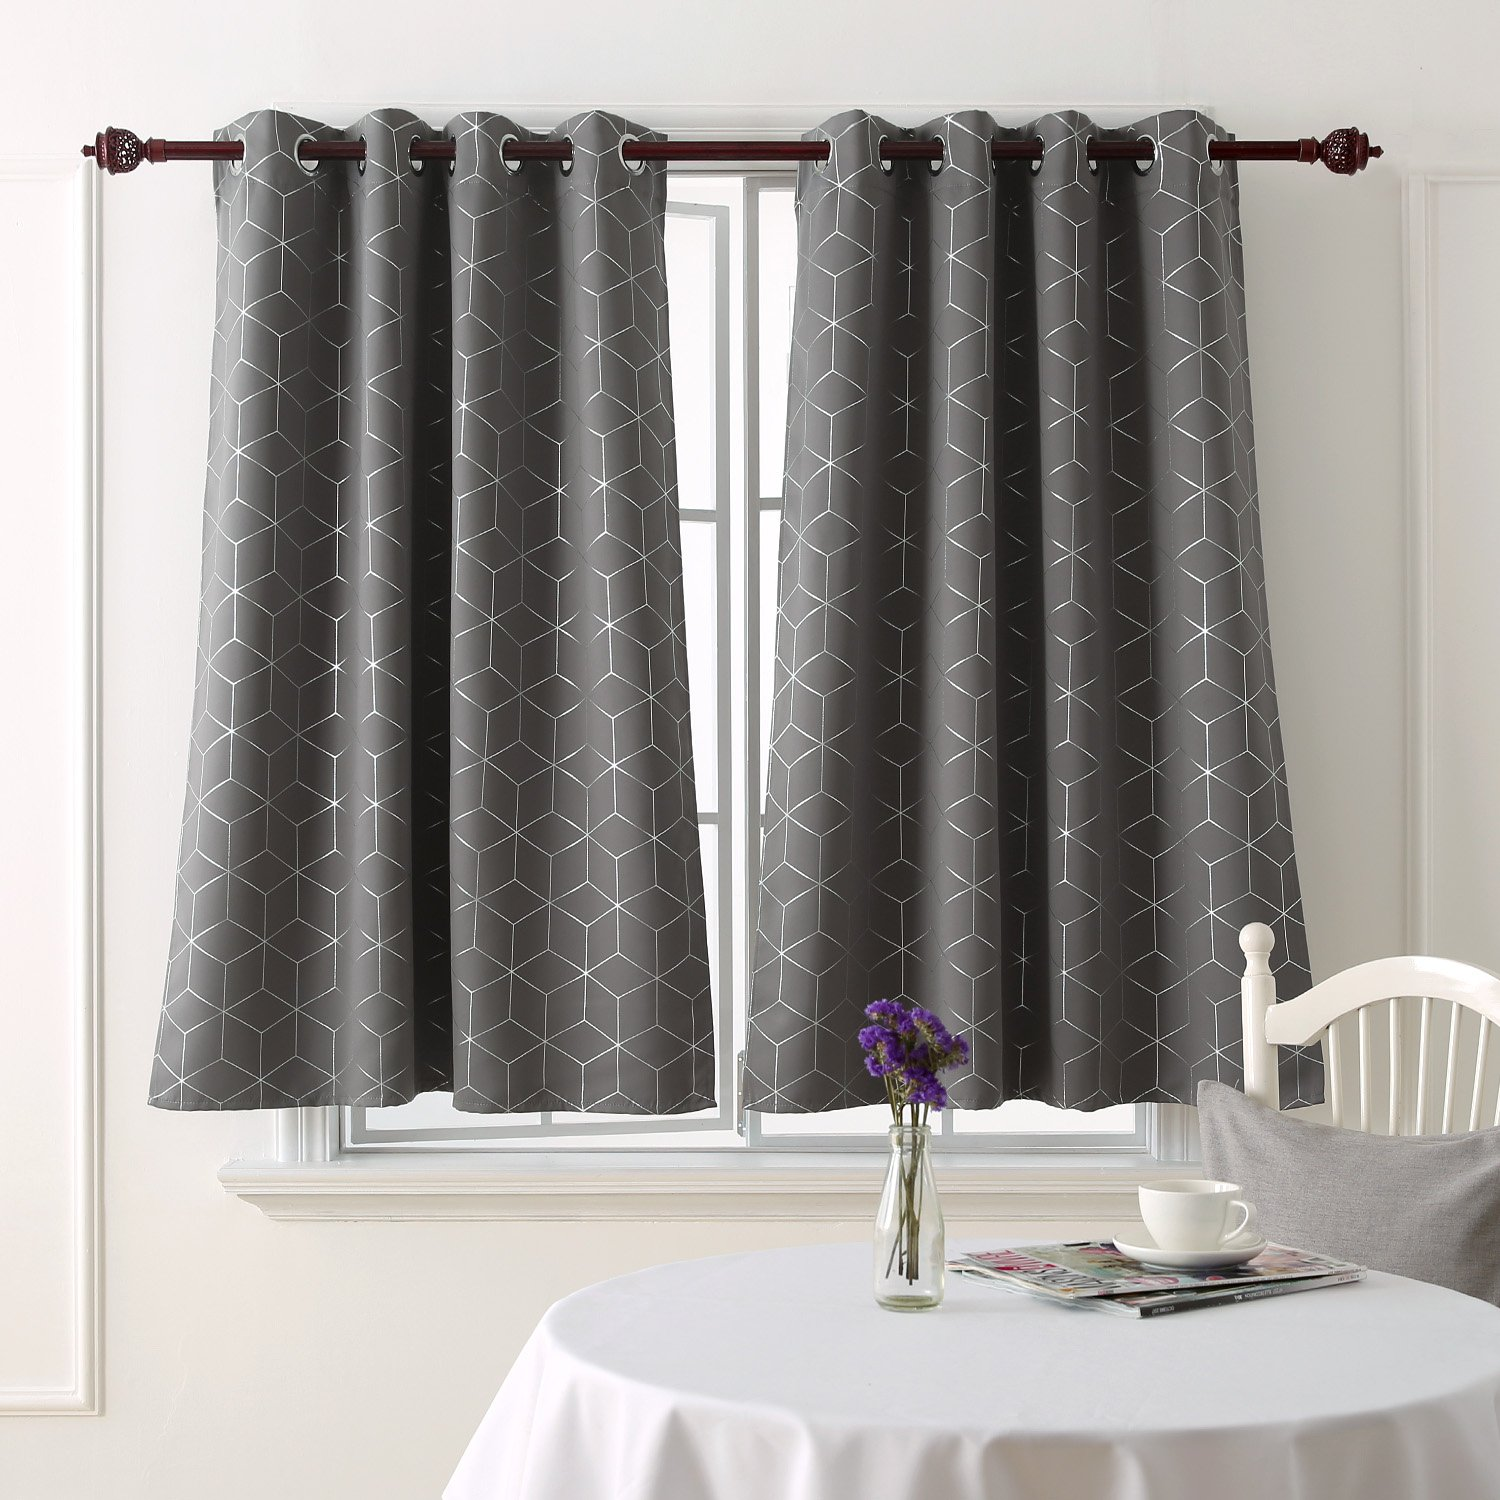 Deconovo Sliver Diamond Foil Print Blackout Curtains Room Darkening Thermal Insulated Curtain Panels Grommet for Living Room Light Grey 52x63 Inch 2 Panels